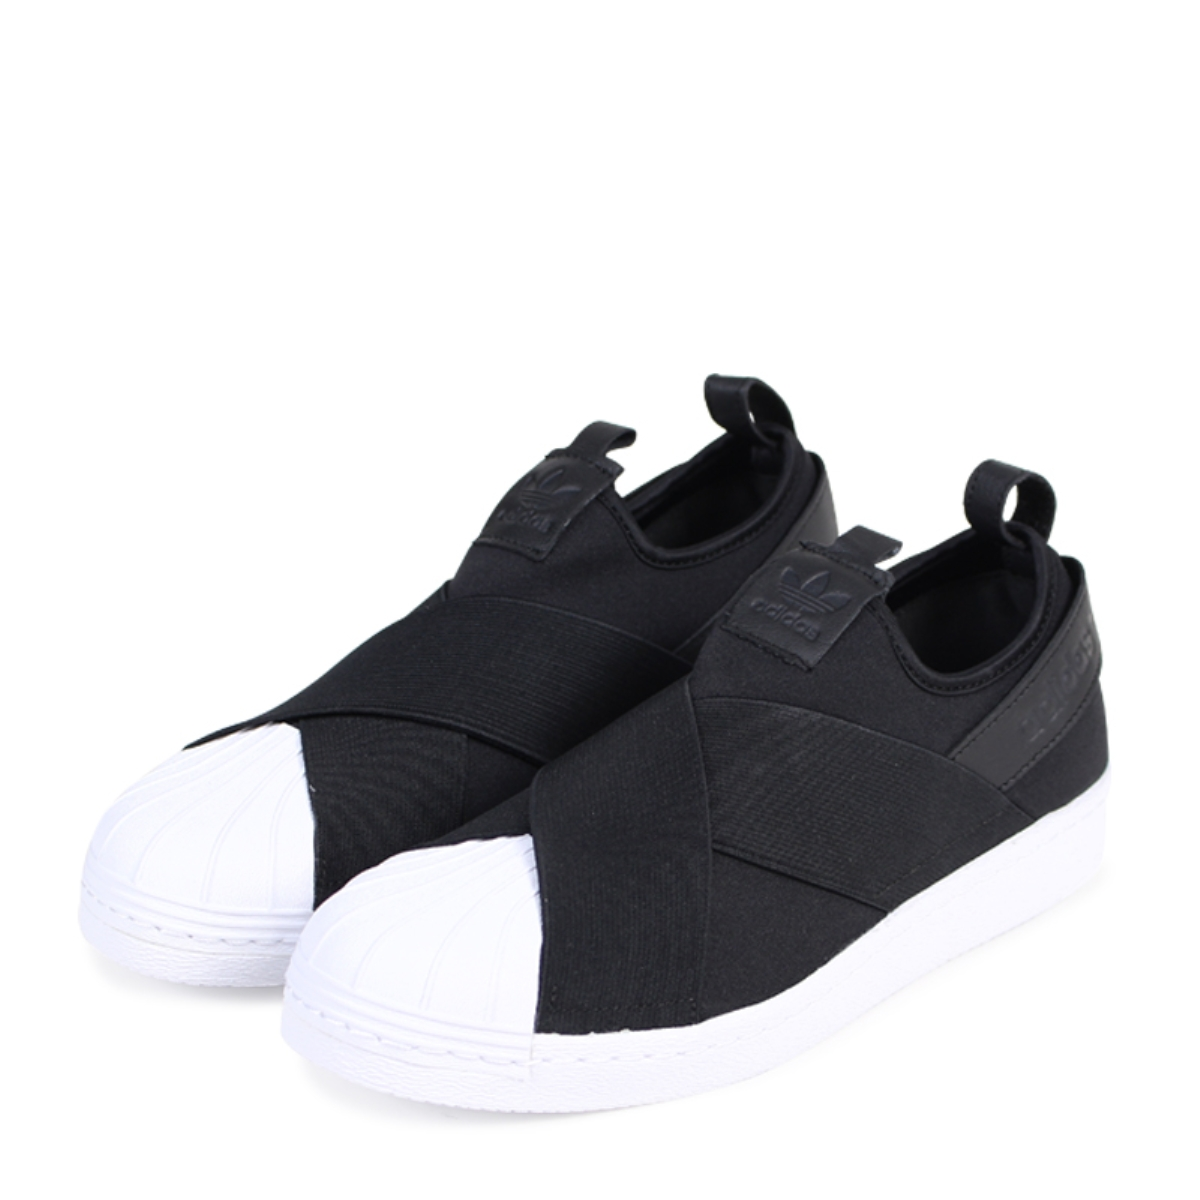 buy popular c527b 30249 adidas Originals SUPERSTAR SLIP-ON Adidas superstar sneakers slip-ons men  gap Dis BZ0112 black originals [1/30 Shinnyu load] [181]